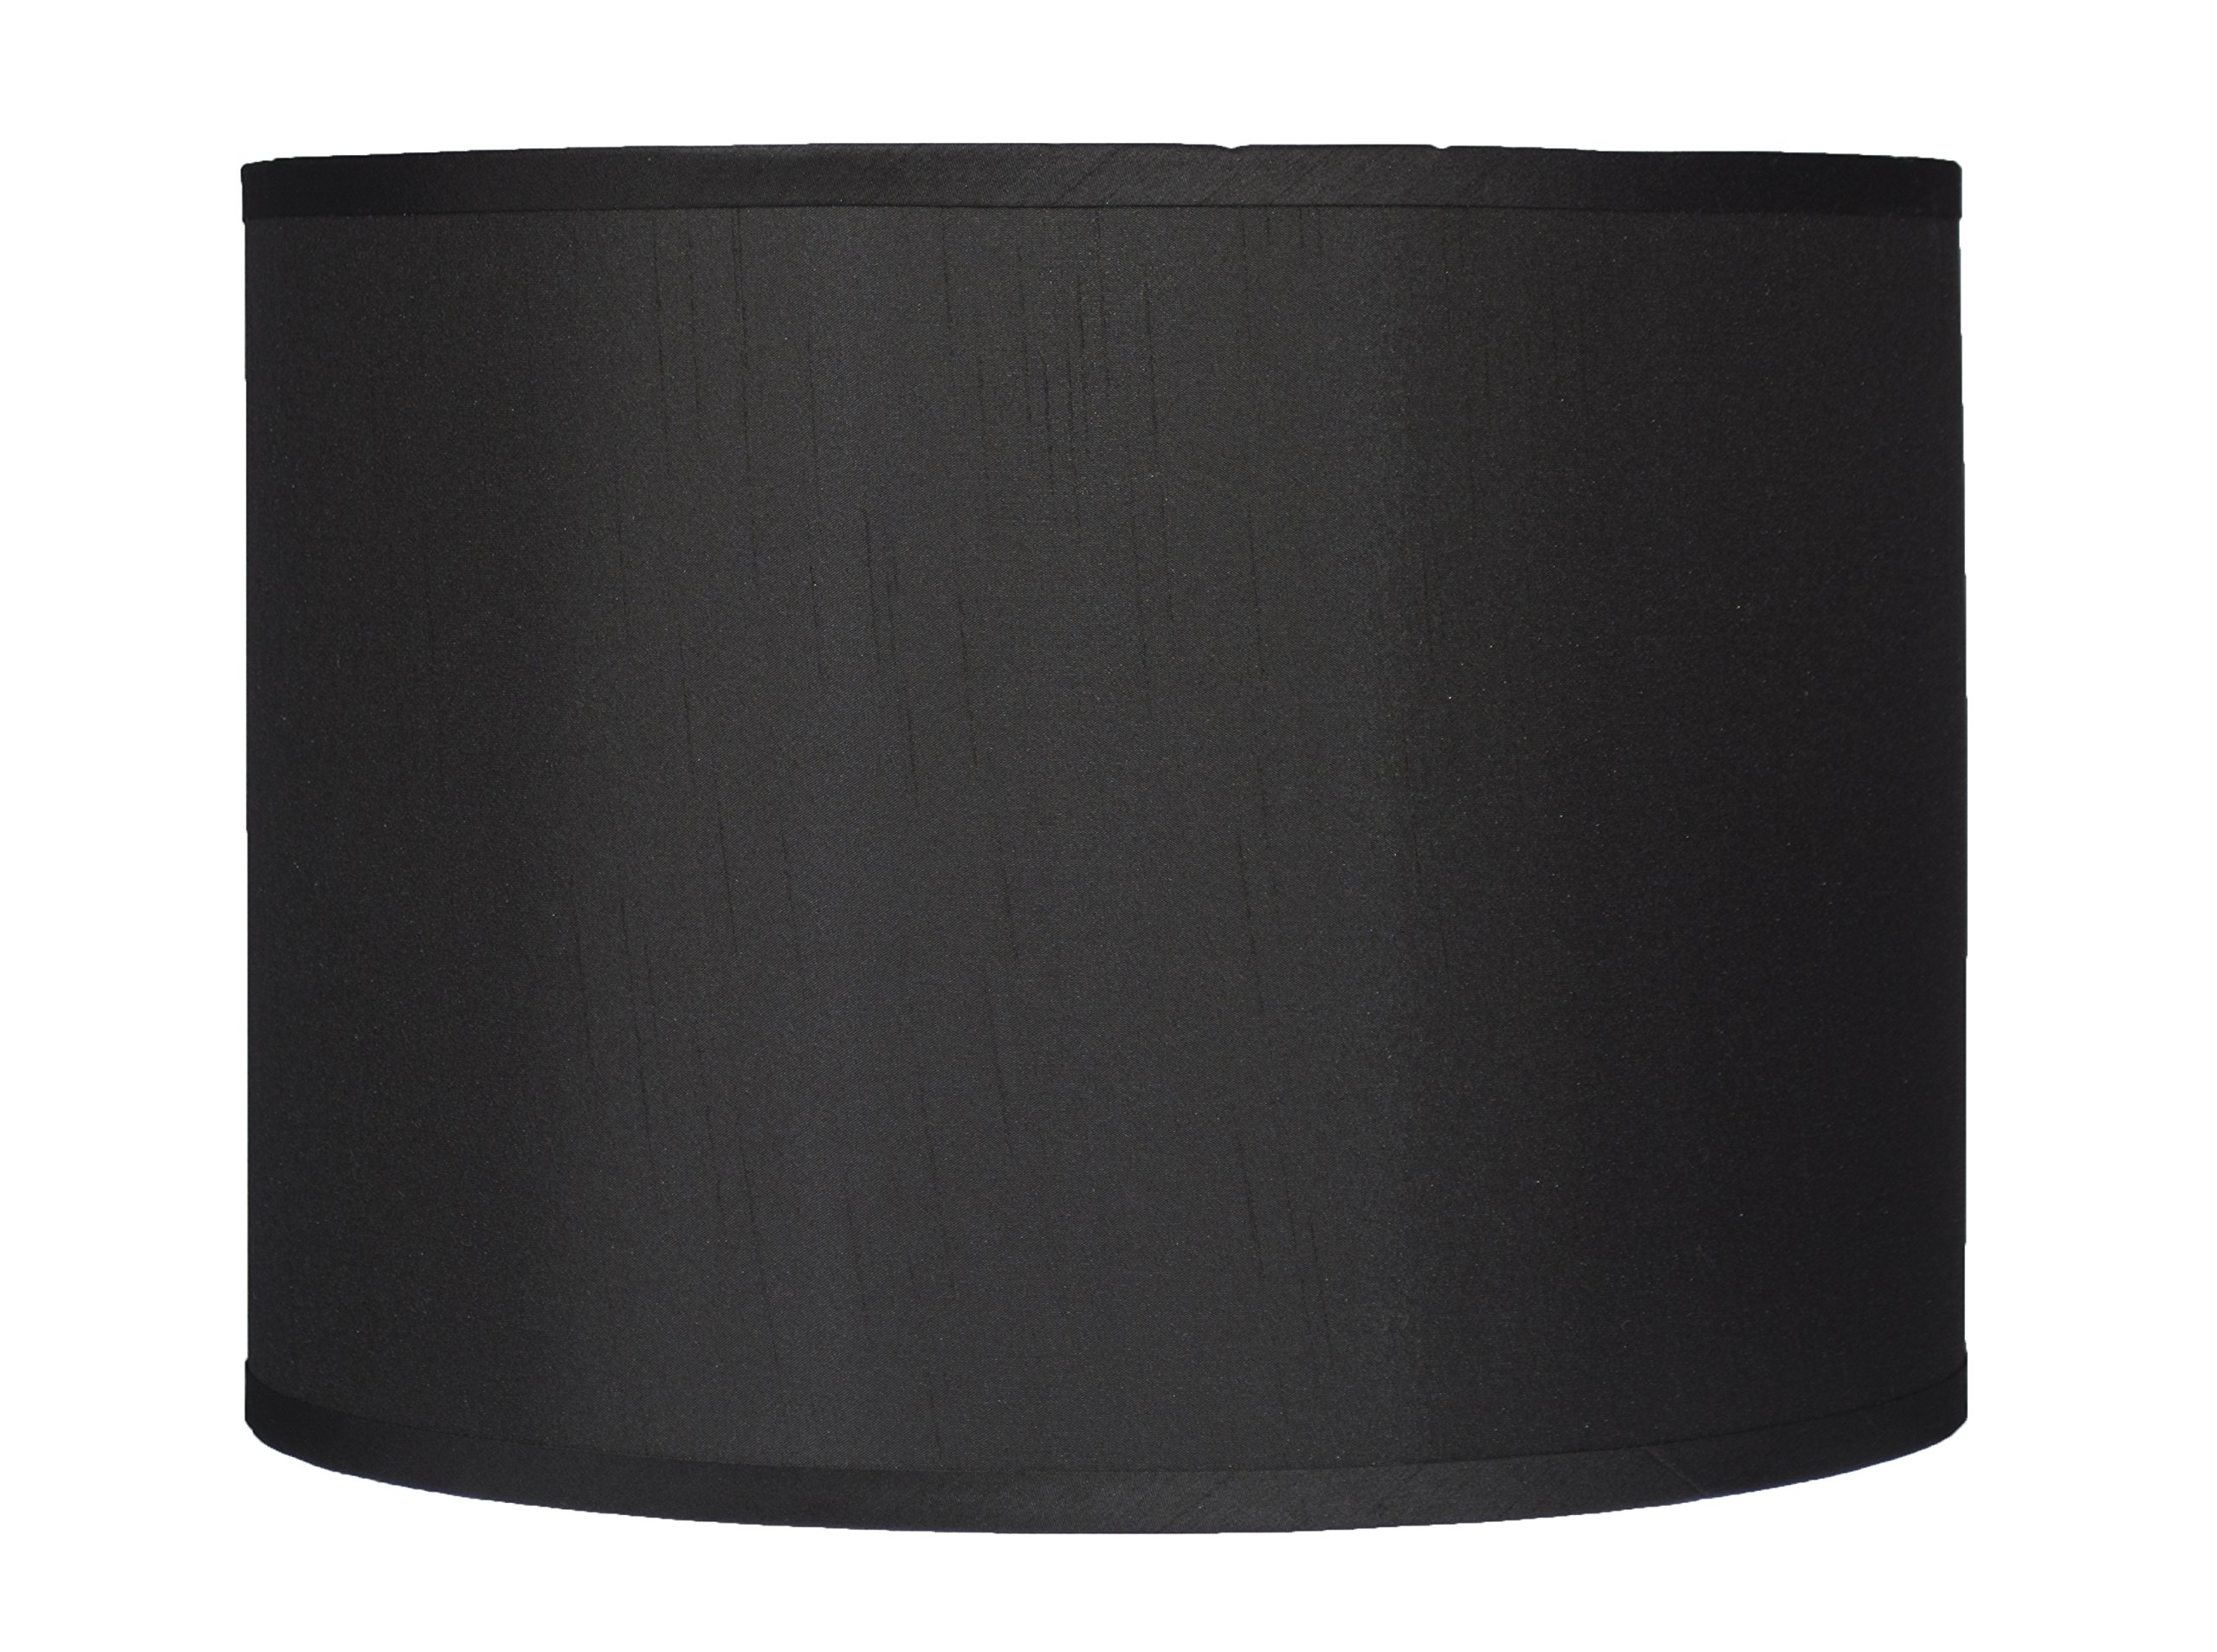 Urbanest Faux Silk Drum Lampshade, 14-inch by 14-inch by 10-inch, Black, Spider Fitter